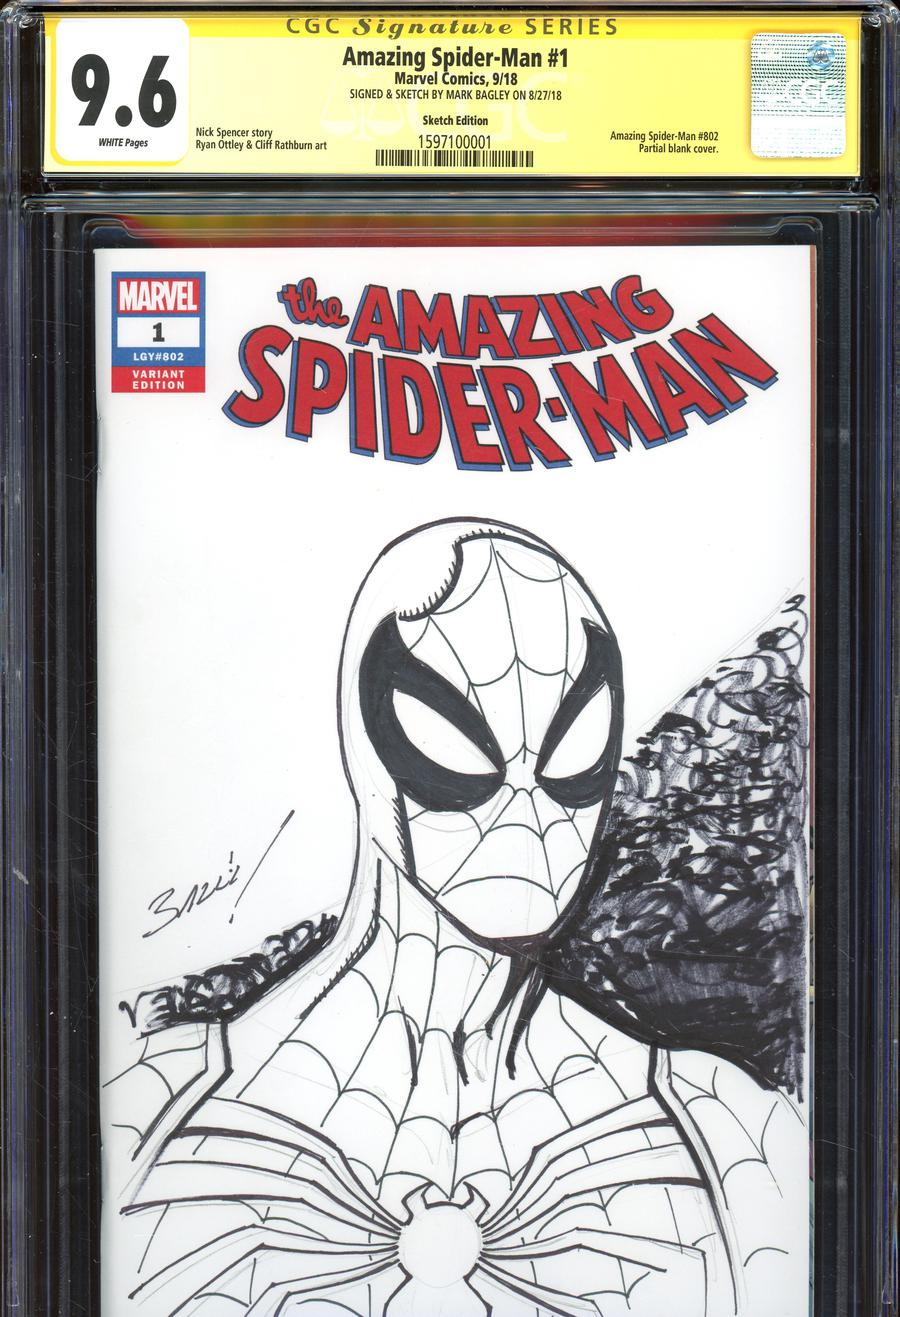 Amazing Spider-Man Vol 5 #1 Cover Z-P Variant Mark Bagley Hand-Drawn Sketch Cover CGC 9.6 (Filled Randomly)